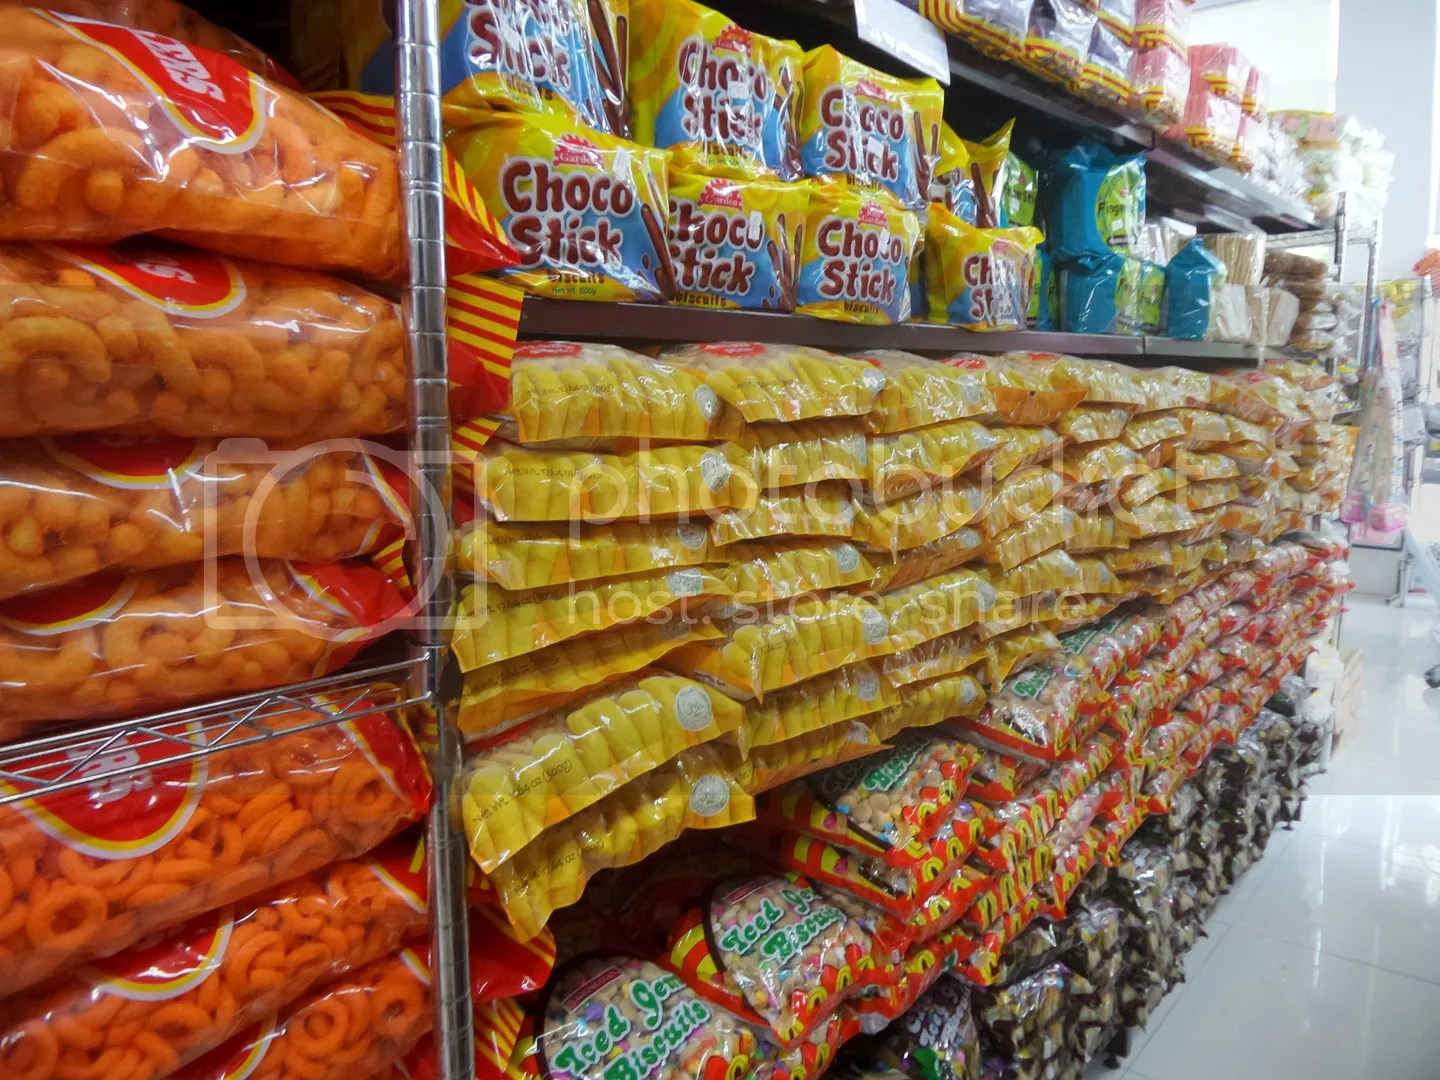 Cookie sticks and bags of cheese curls and cheese rings on sale.